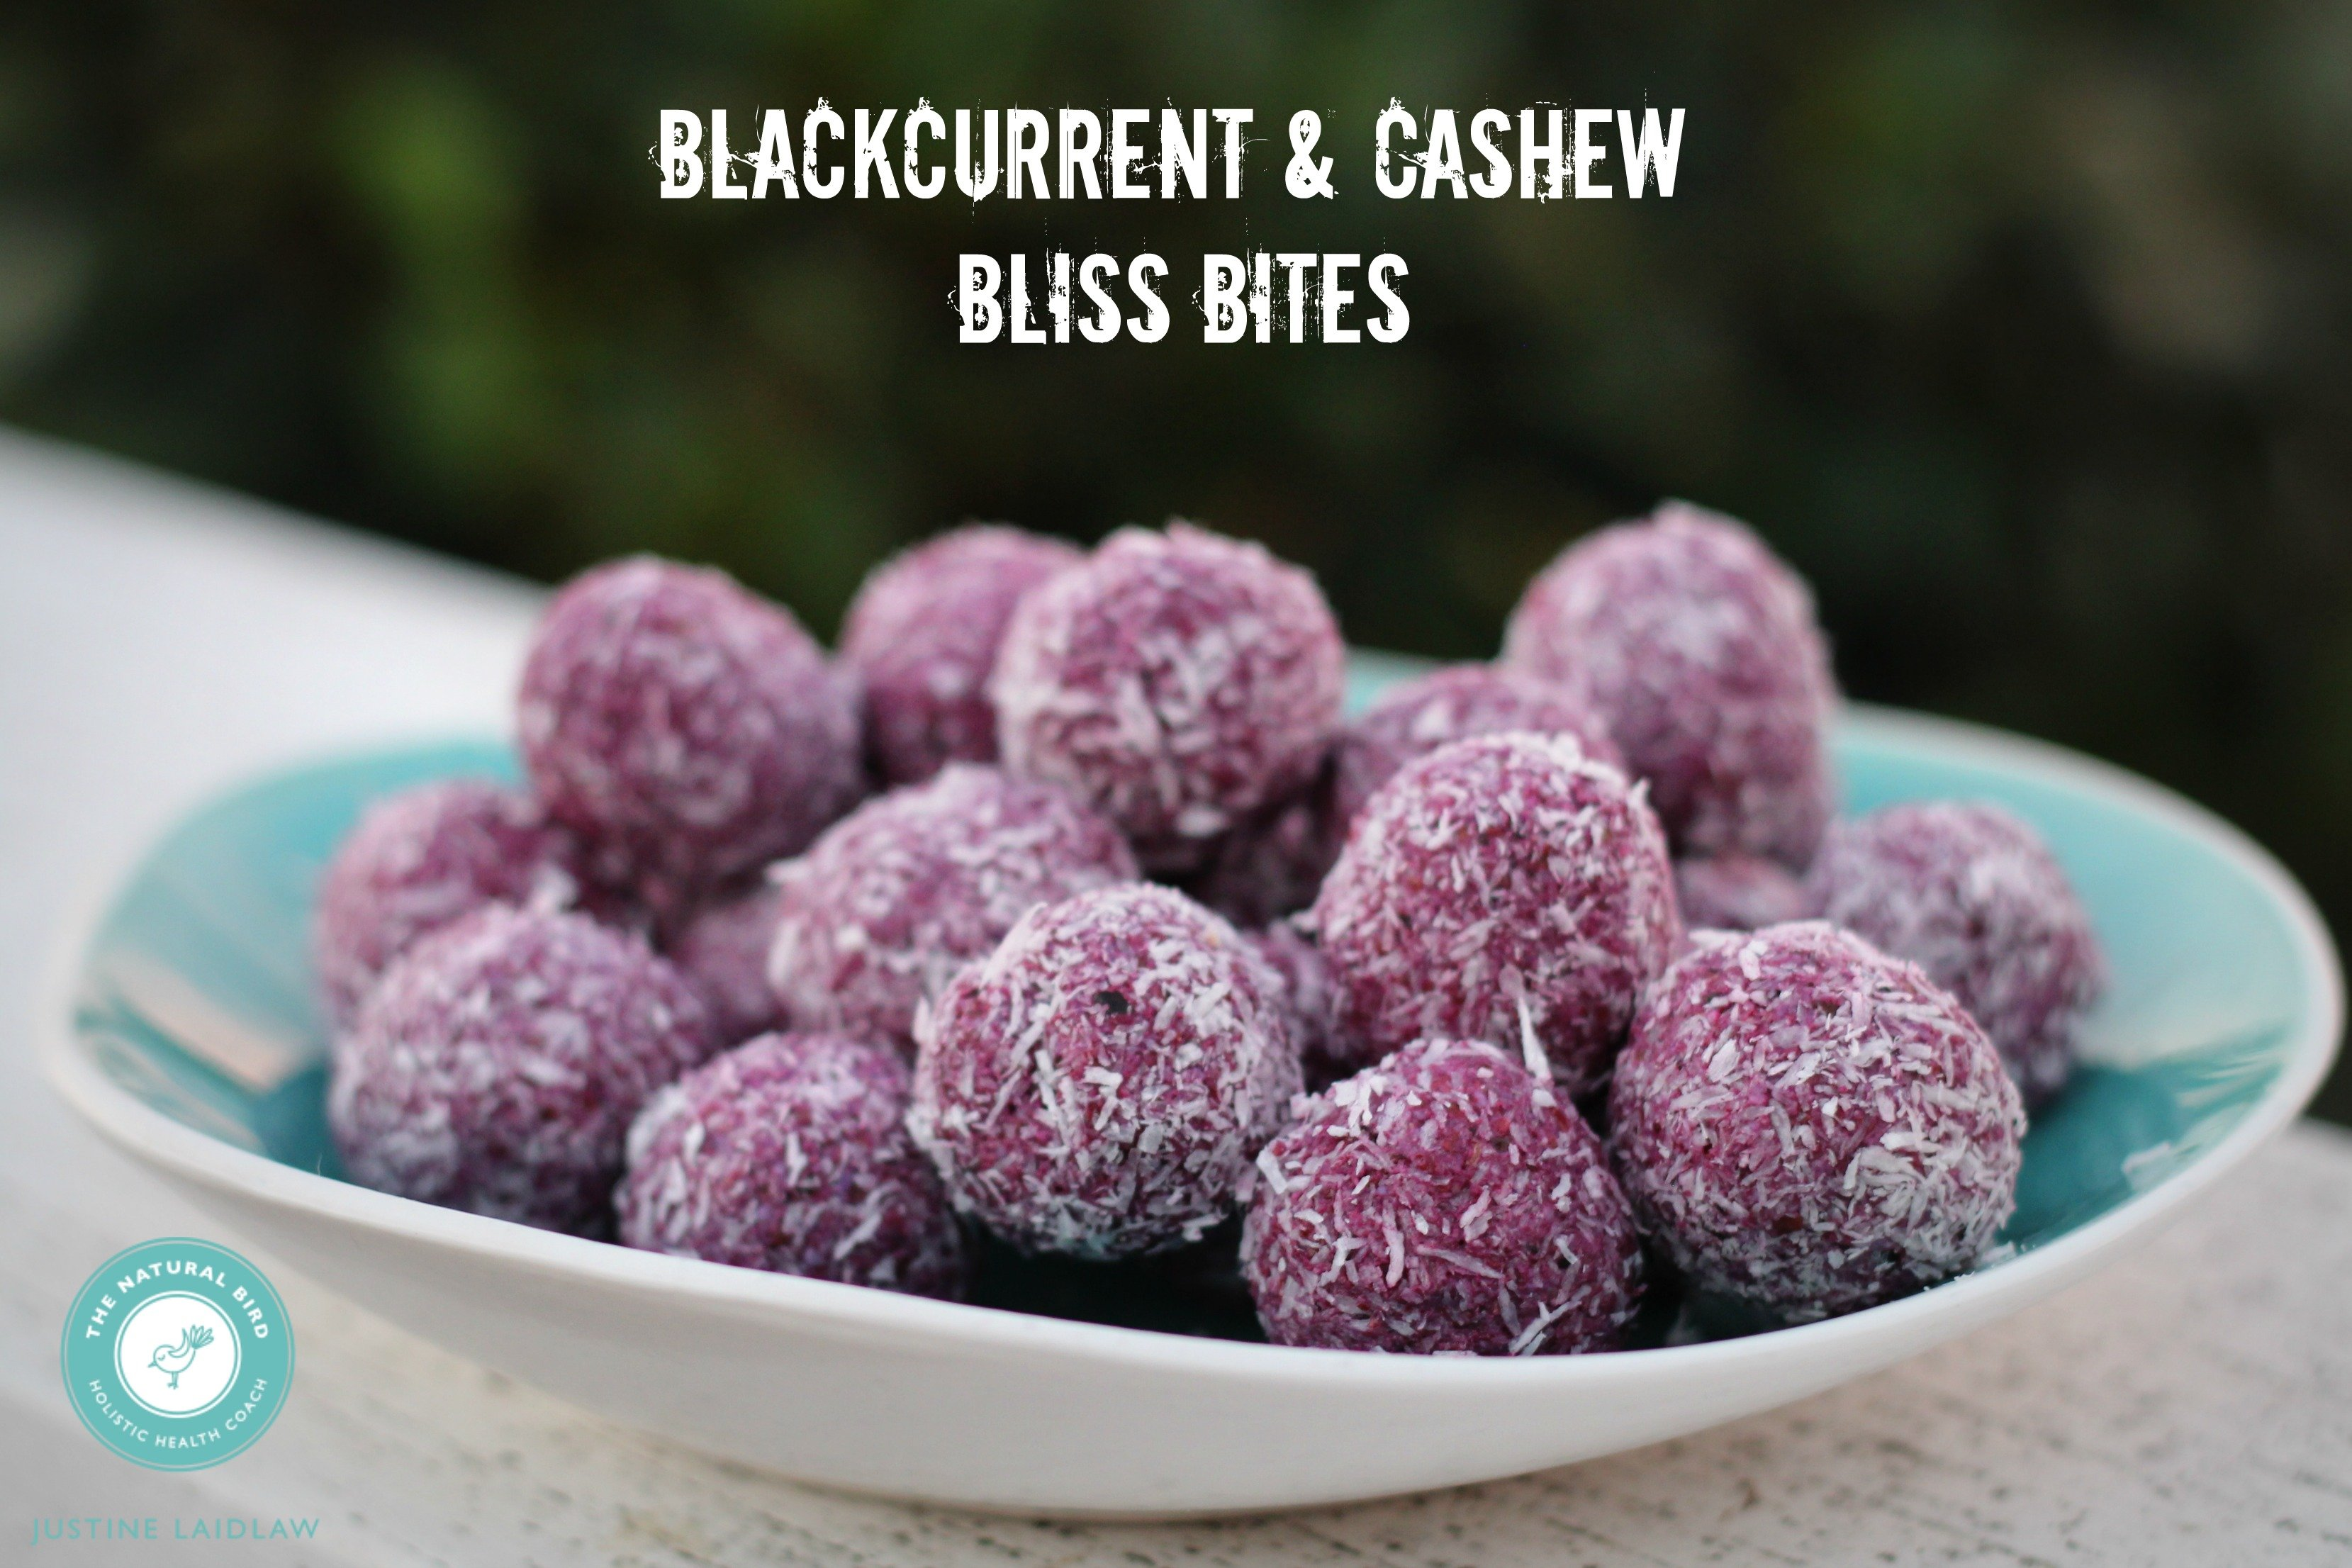 Blackcurrent & Cashew Bliss Bites